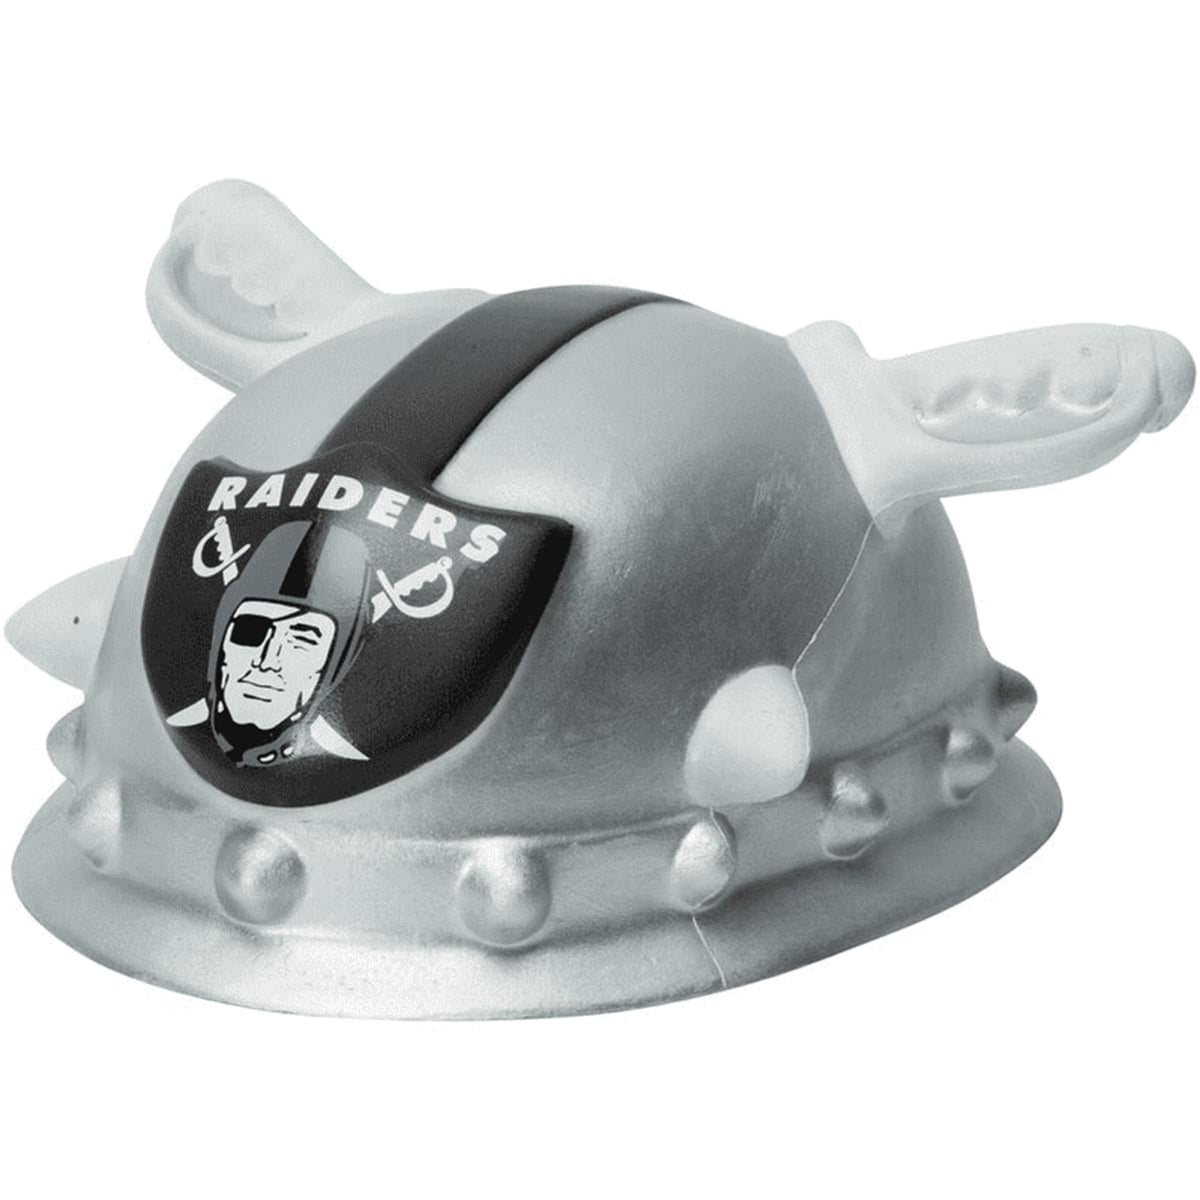 NFL Team Mascot Foamhead Hat: Oakland Raiders